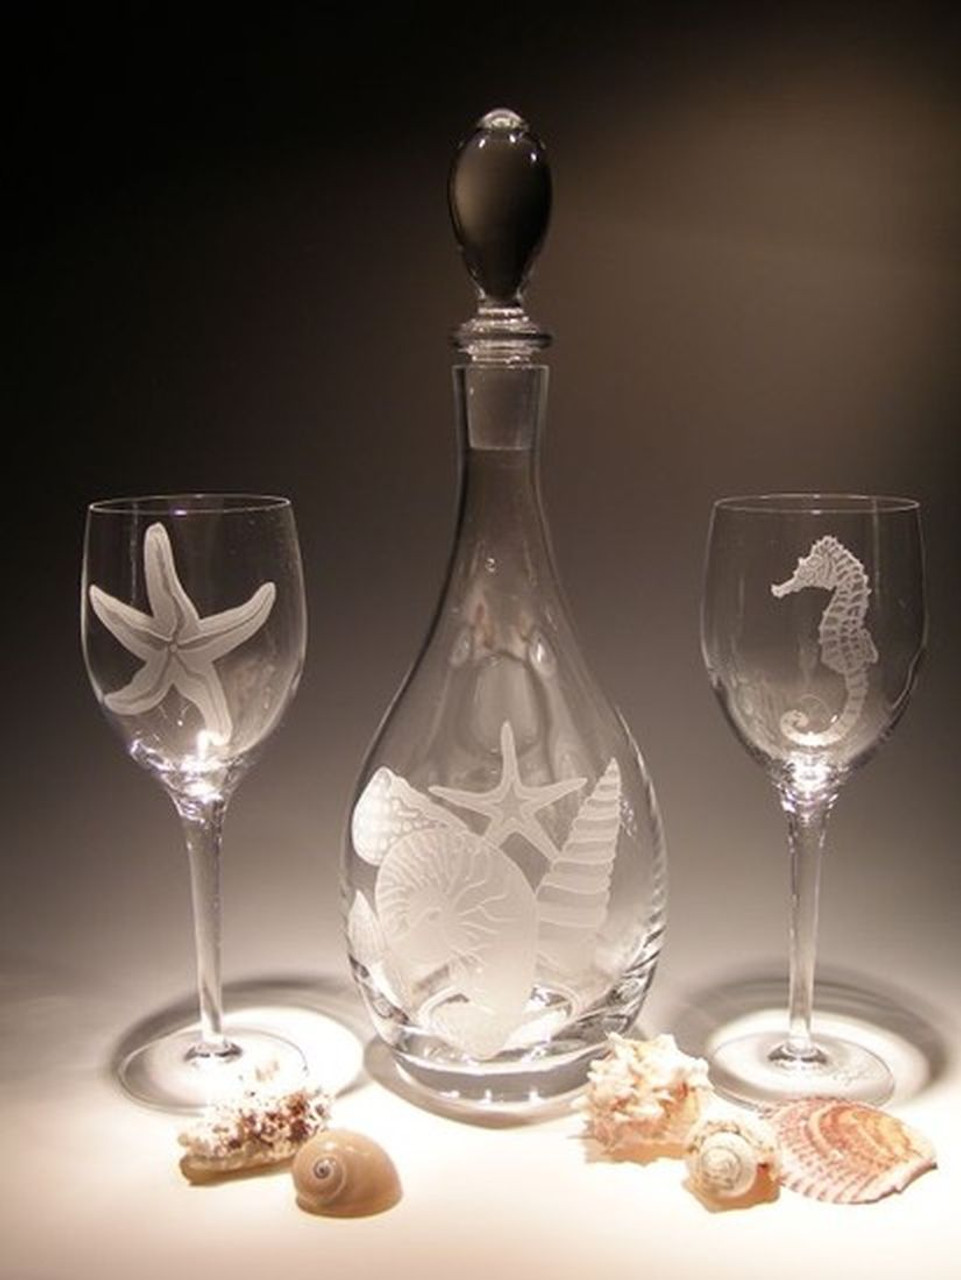 Hand Carved Crystal Wine Glasses - 10 oz - Set of 2 - Personalized